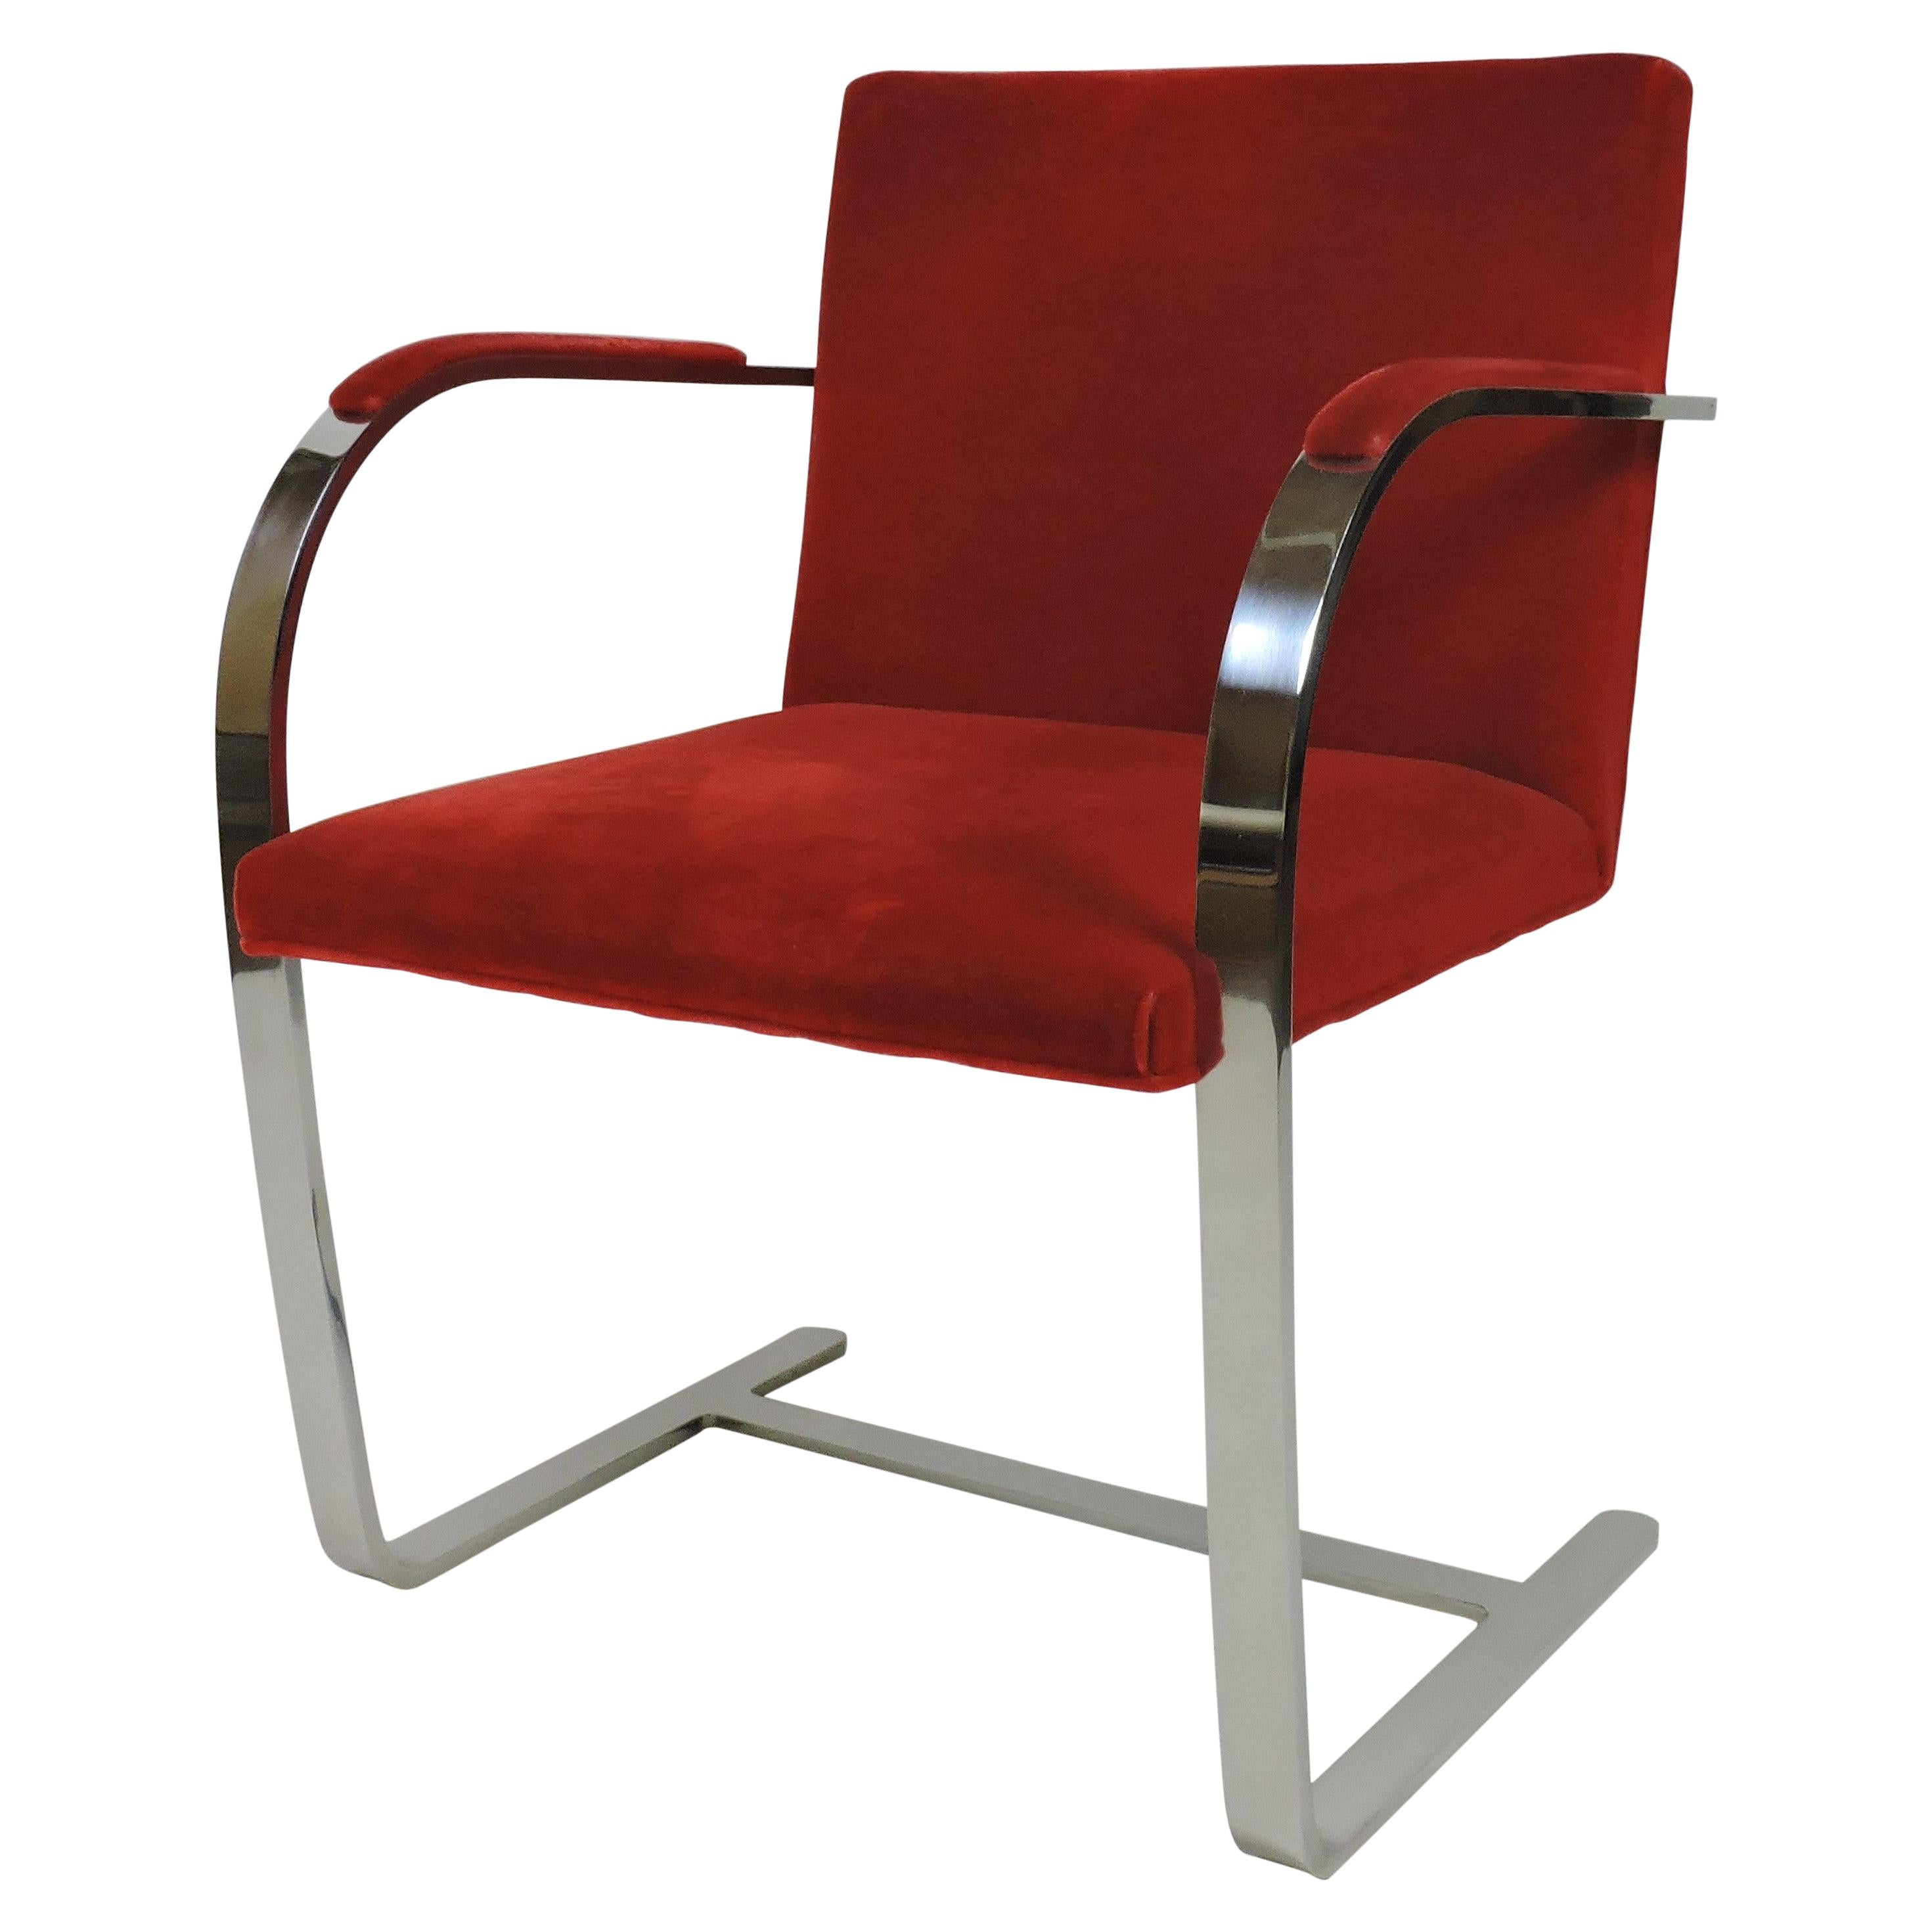 Mies van der Rohe for Knoll Brno Flat Bar Stainless Steel Chair